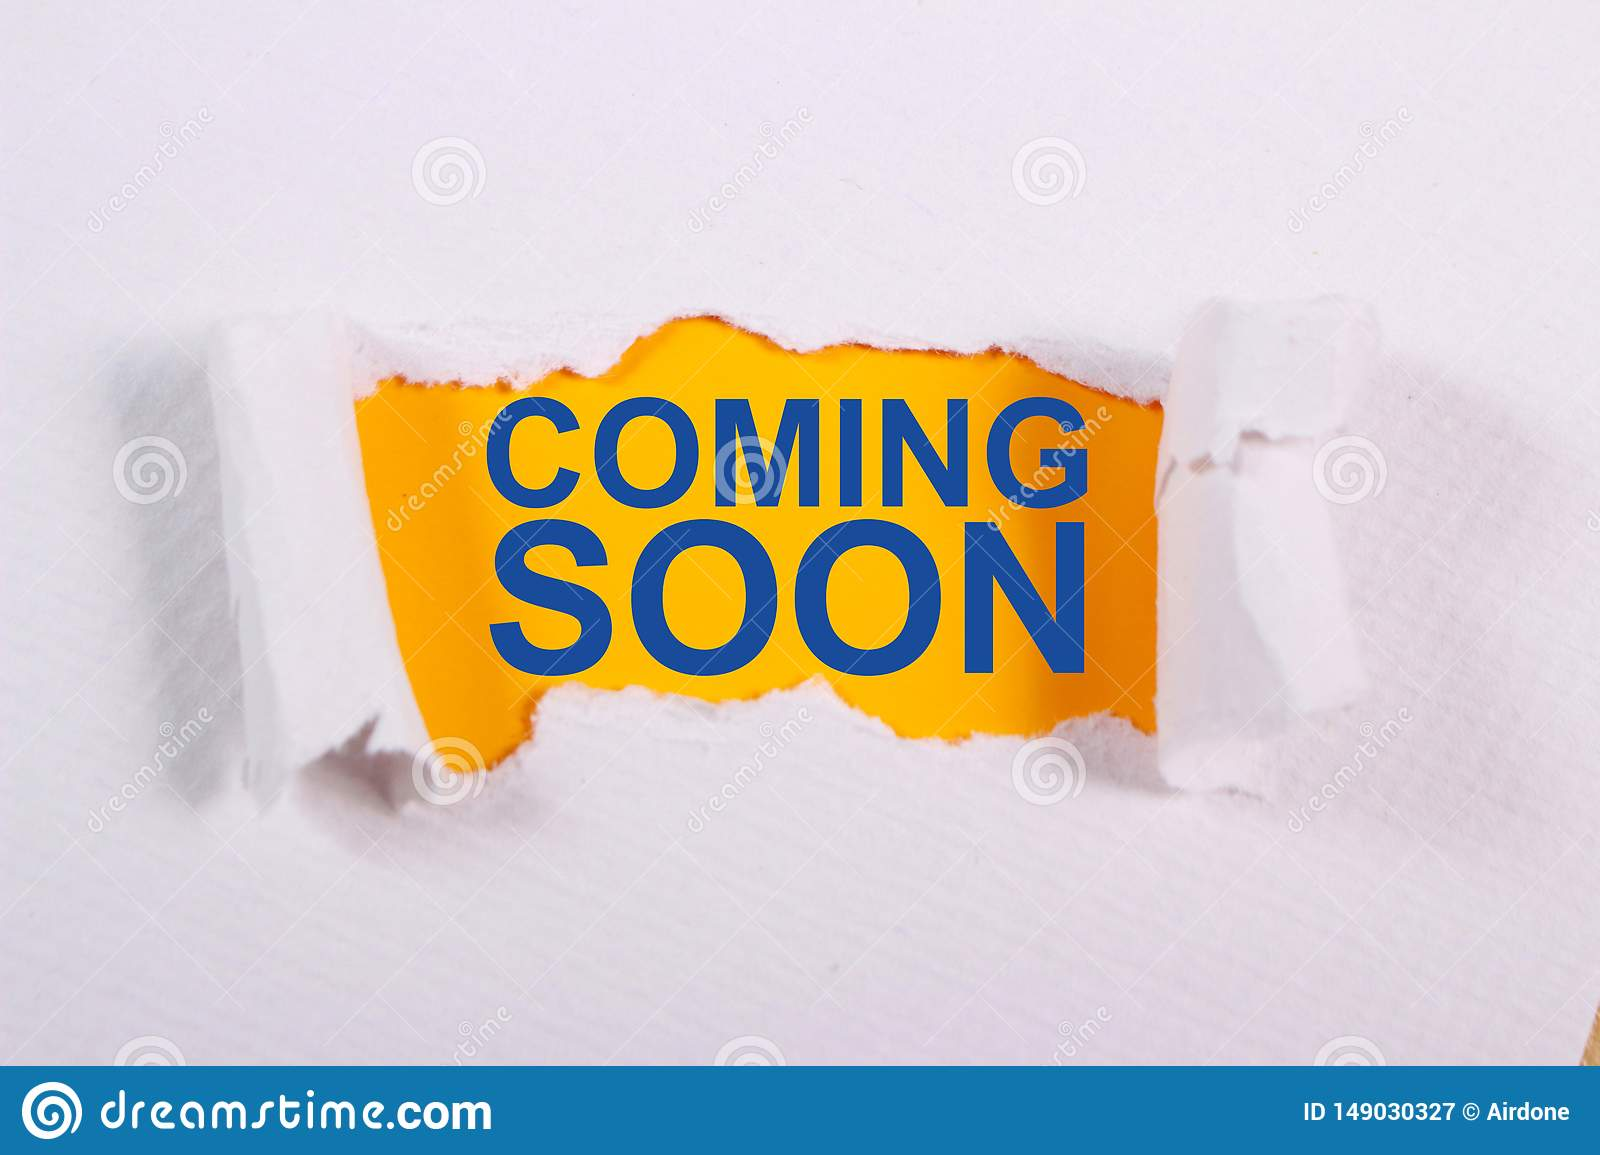 3 510 Coming Soon Photos Free Royalty Free Stock Photos From Dreamstime